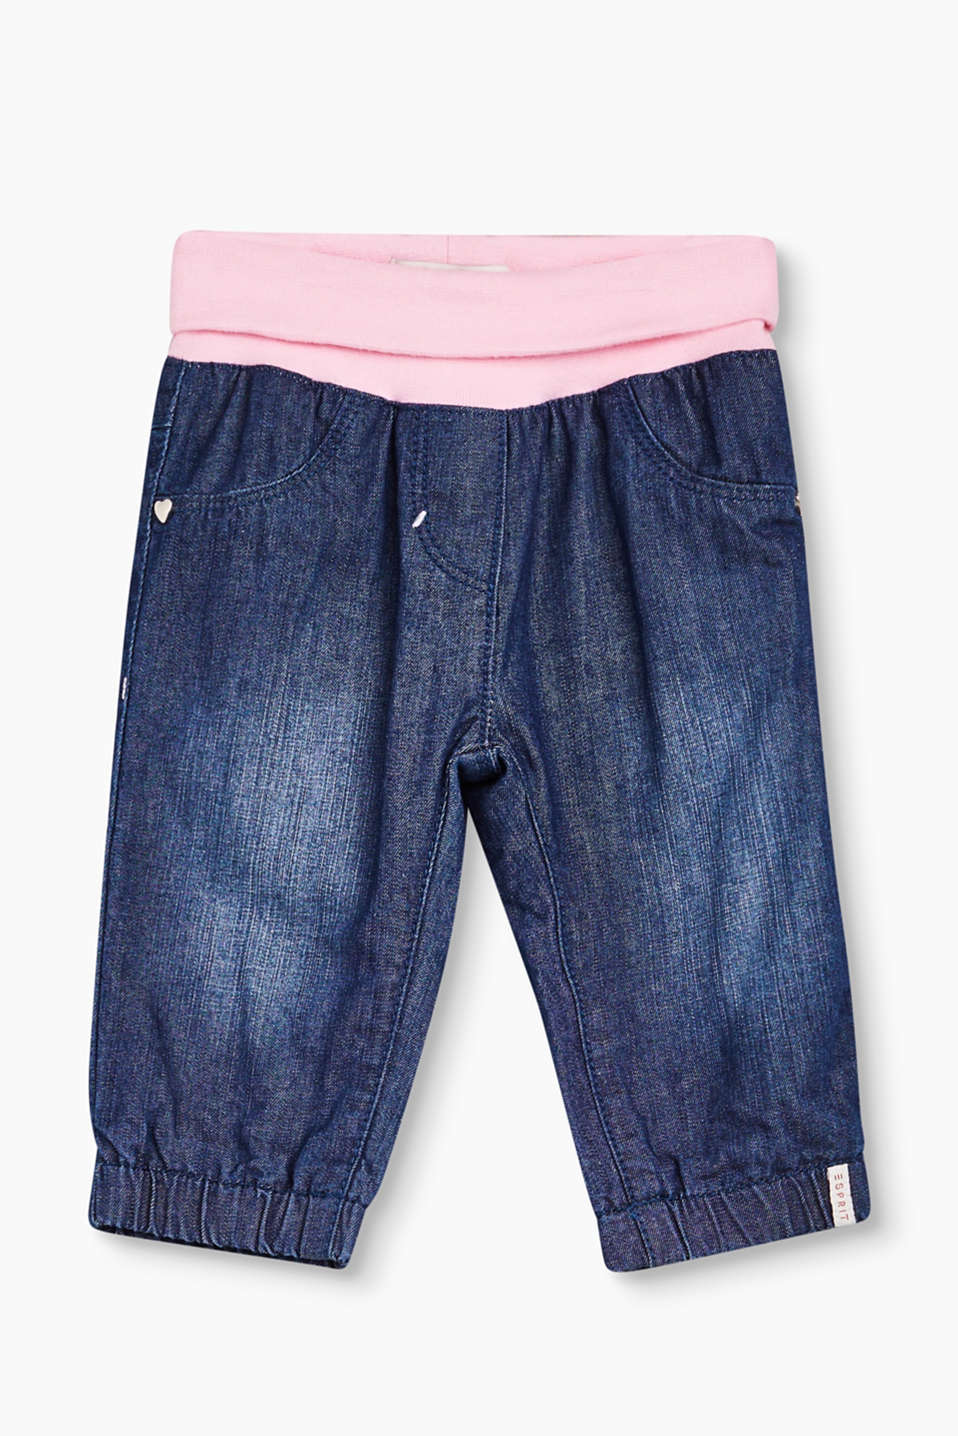 These soft cotton jeans are perfect for active little baby girls thanks to the snug ribbed waistband.